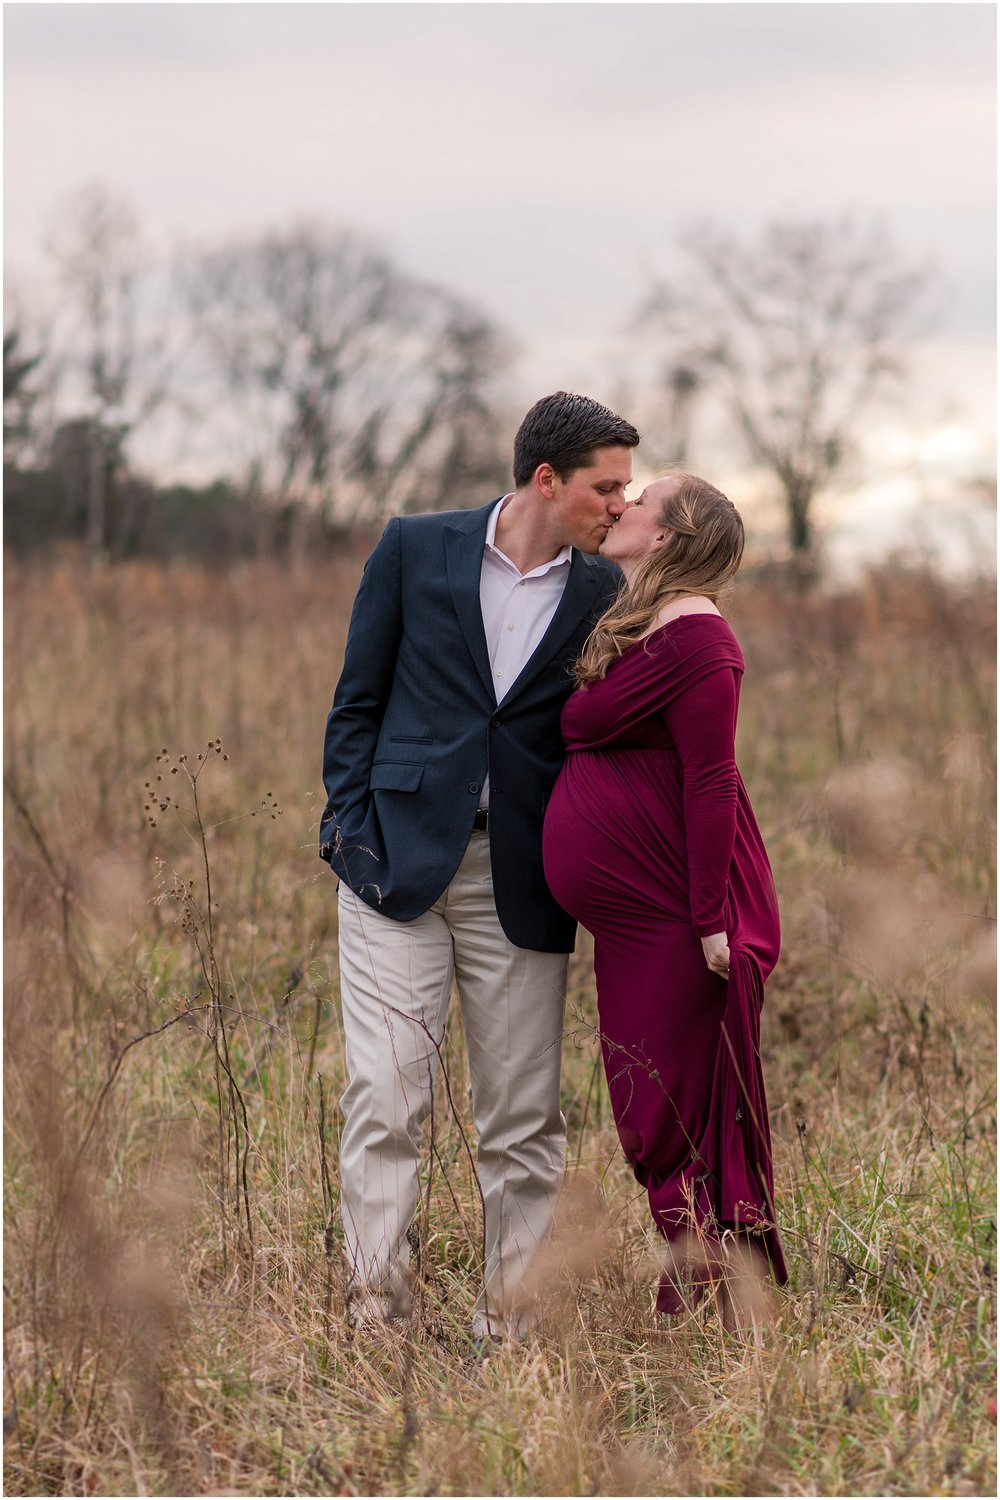 Hannah Leigh Photography Winter Maternity Towson MD_2750.jpg